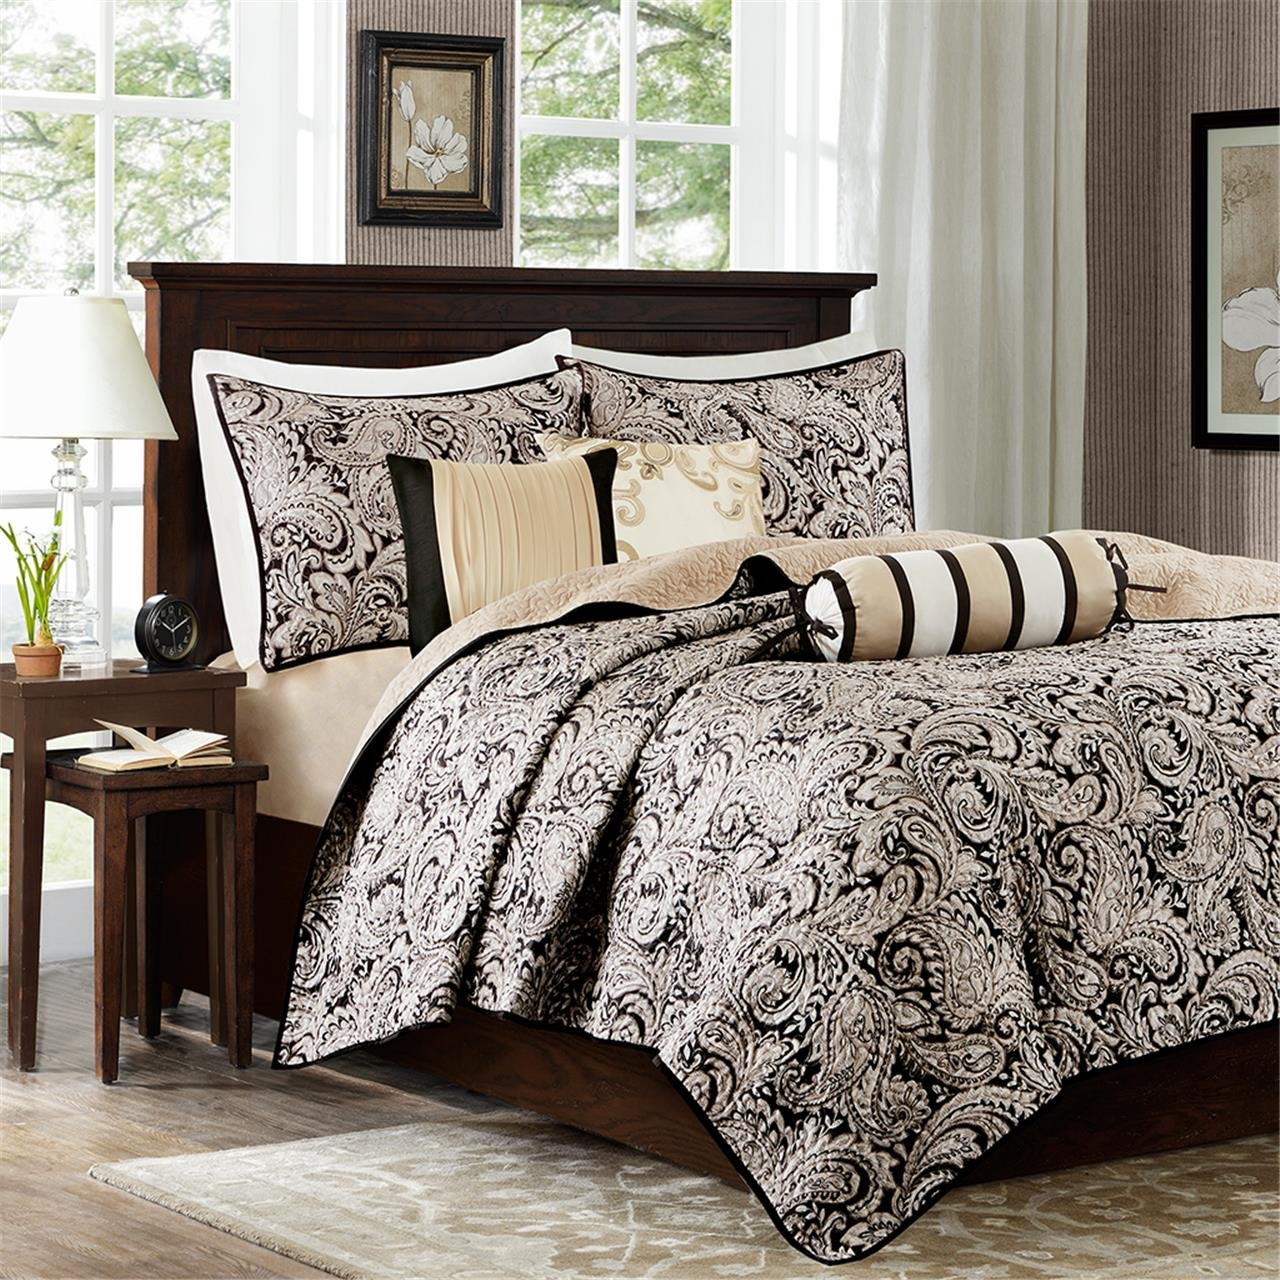 Madison Park Aubrey 6 Piece Quilted Coverlet Set, Black, Cal King, King King